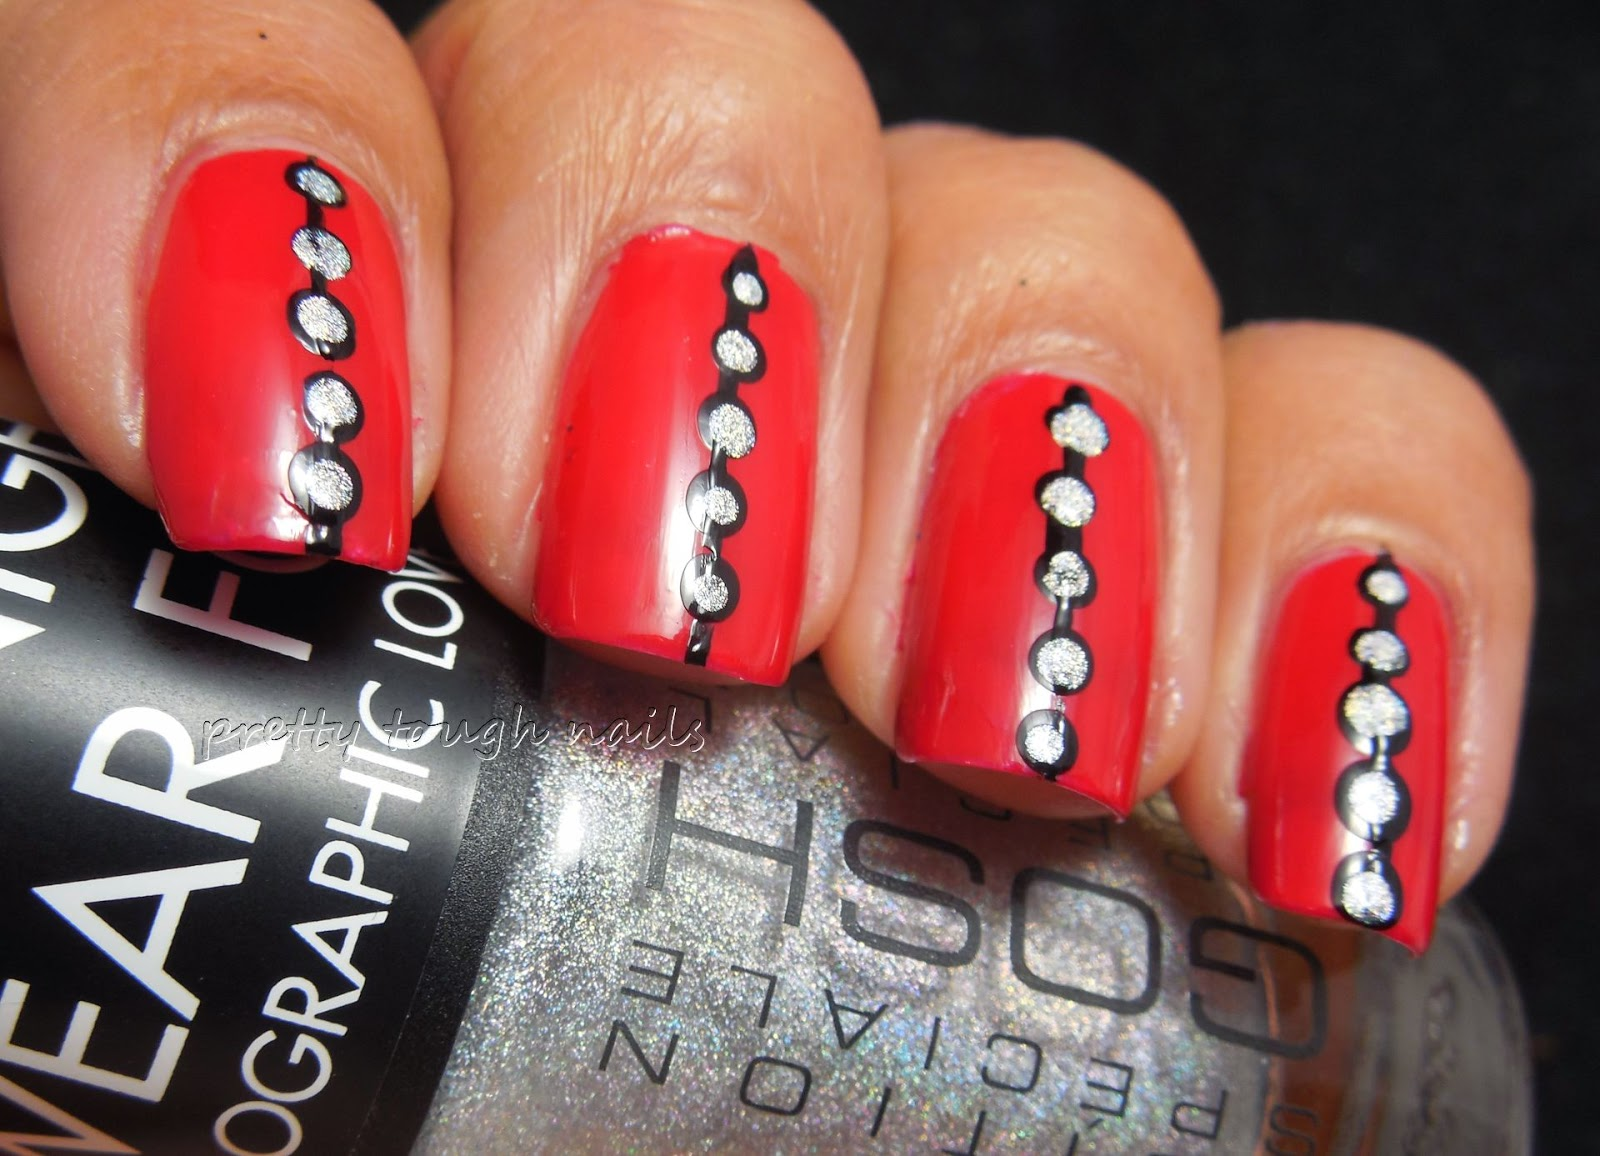 Revlon Colorstay Red Carpet Dotticure